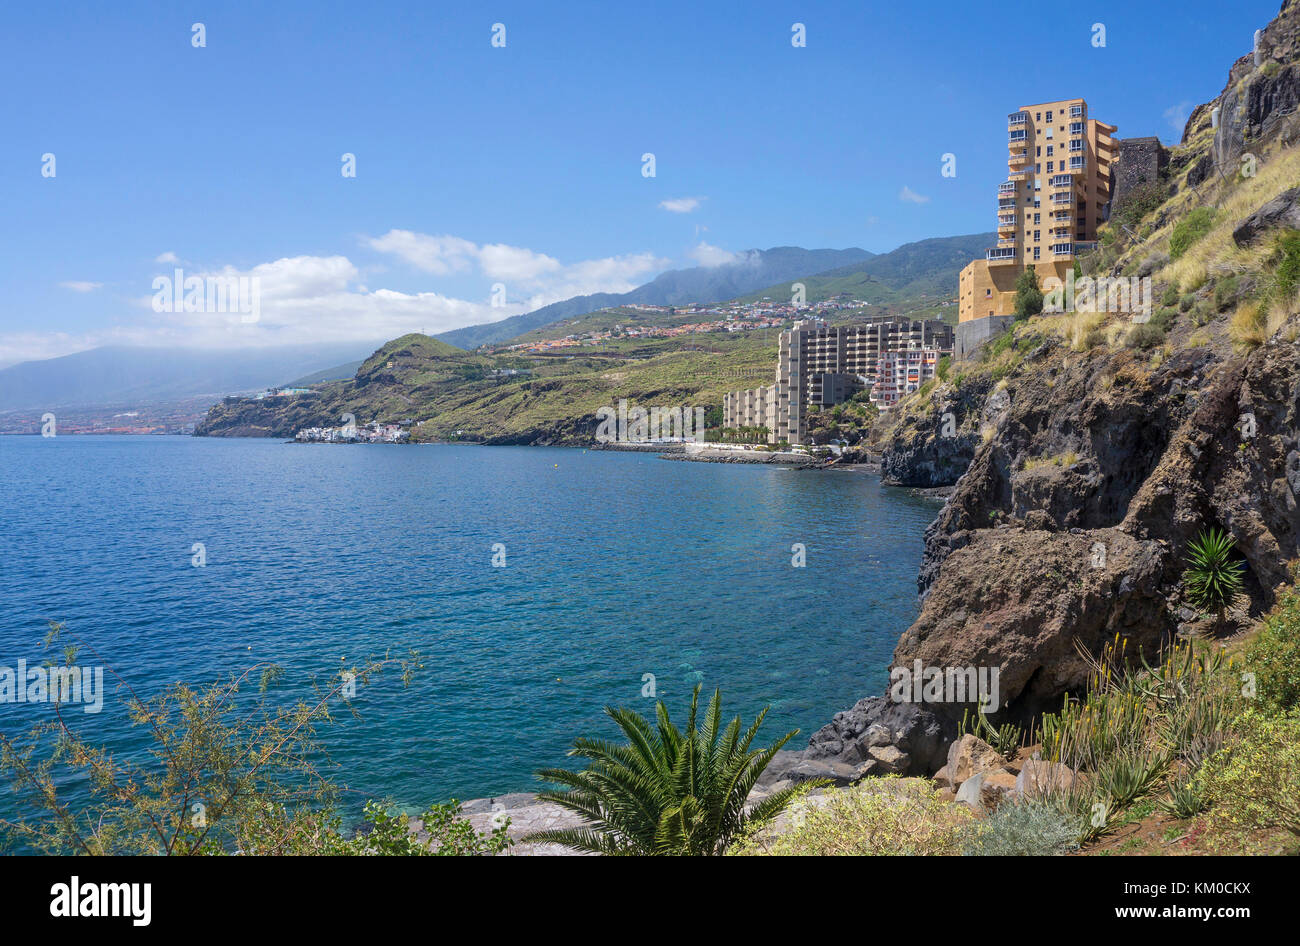 Appartment complex at the coat, Tabaiba, Tenerife island, Canary islands, Spain - Stock Image